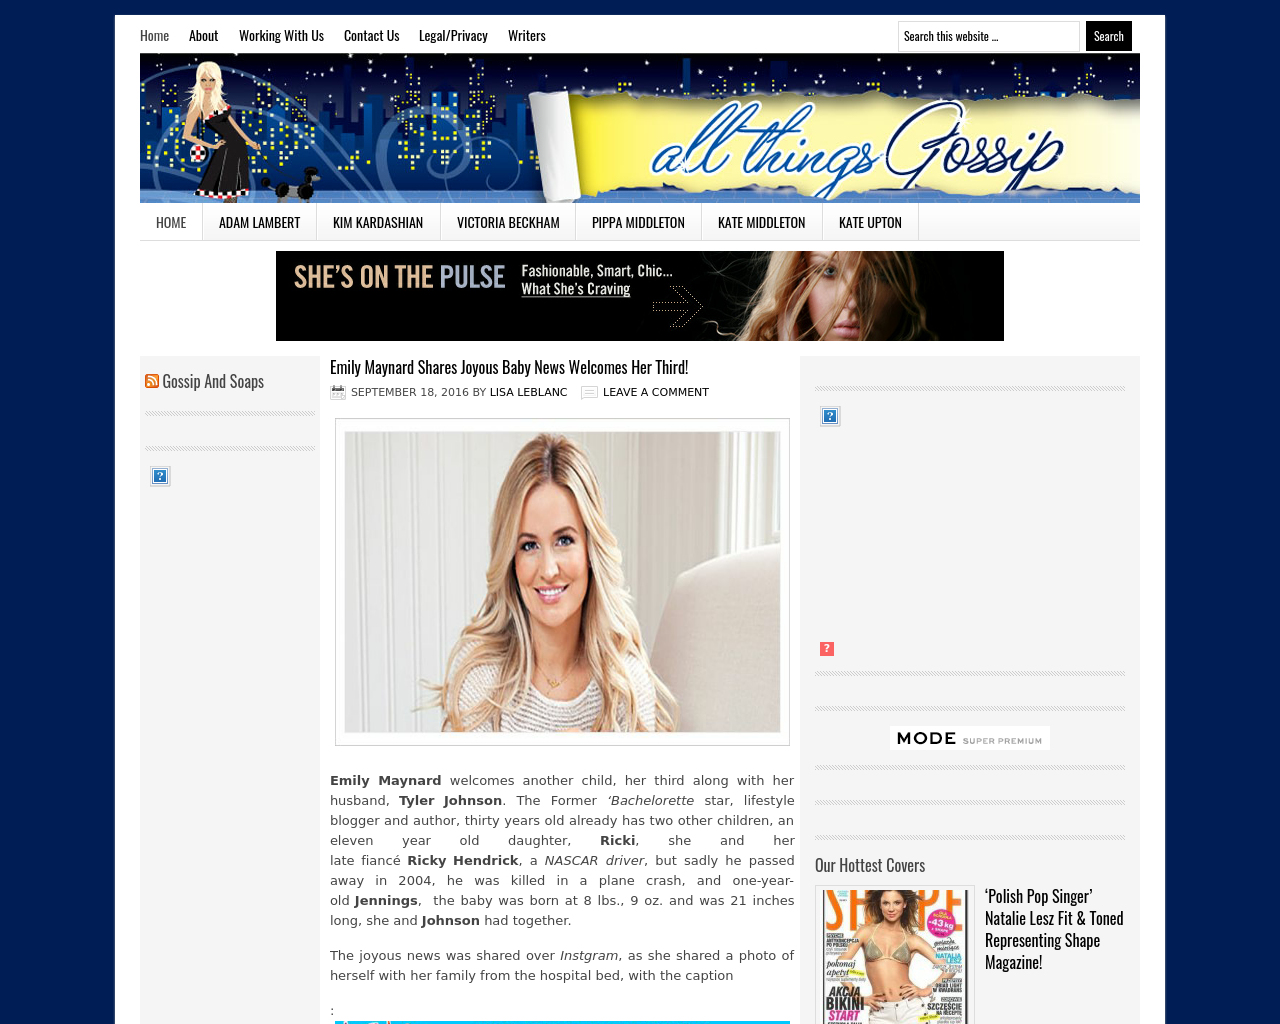 All-Things-Gossip-Advertising-Reviews-Pricing